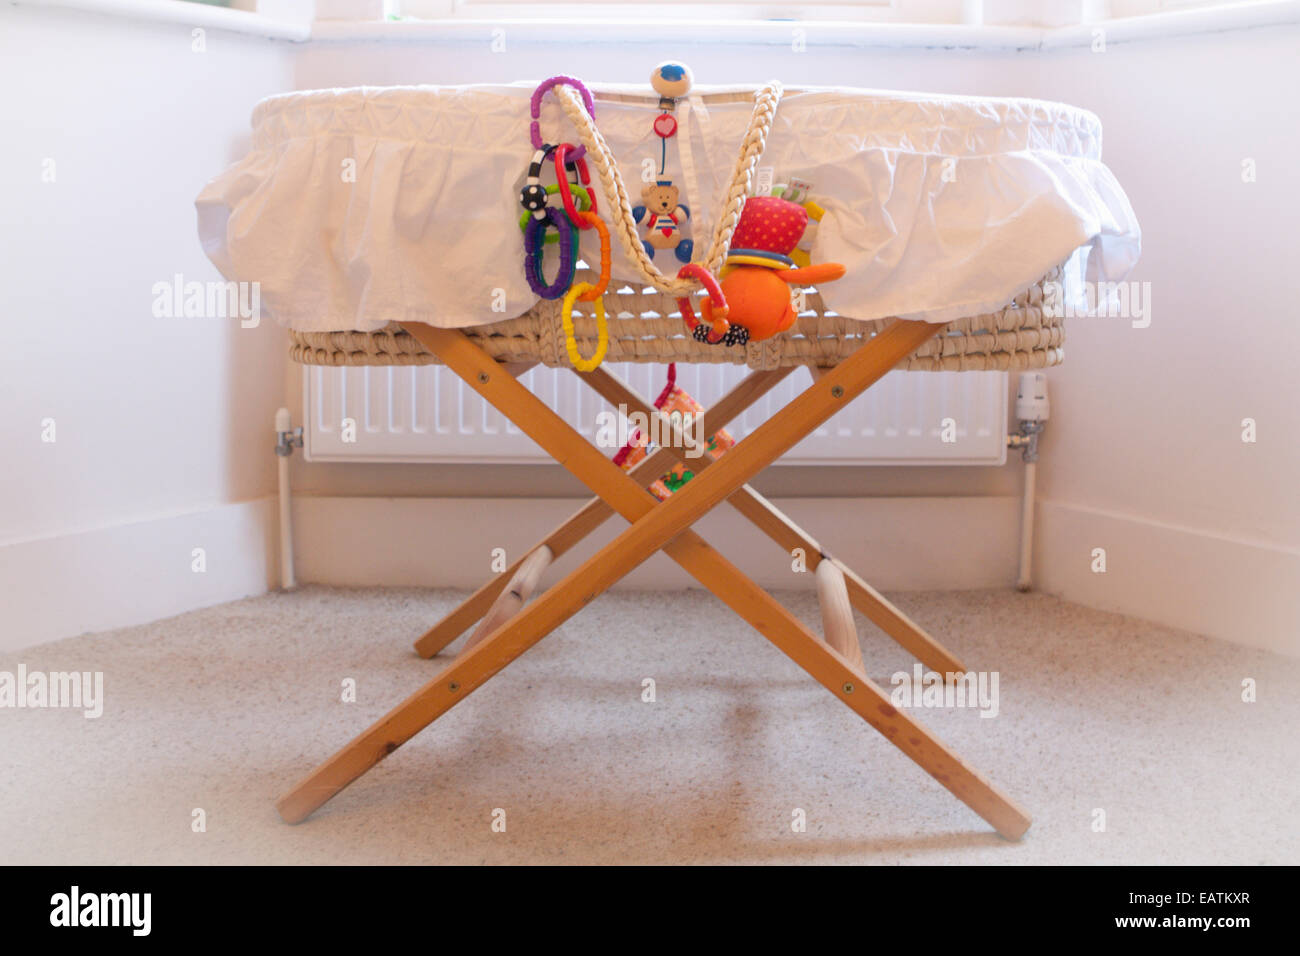 Toys hanging of a moses basket - Stock Image